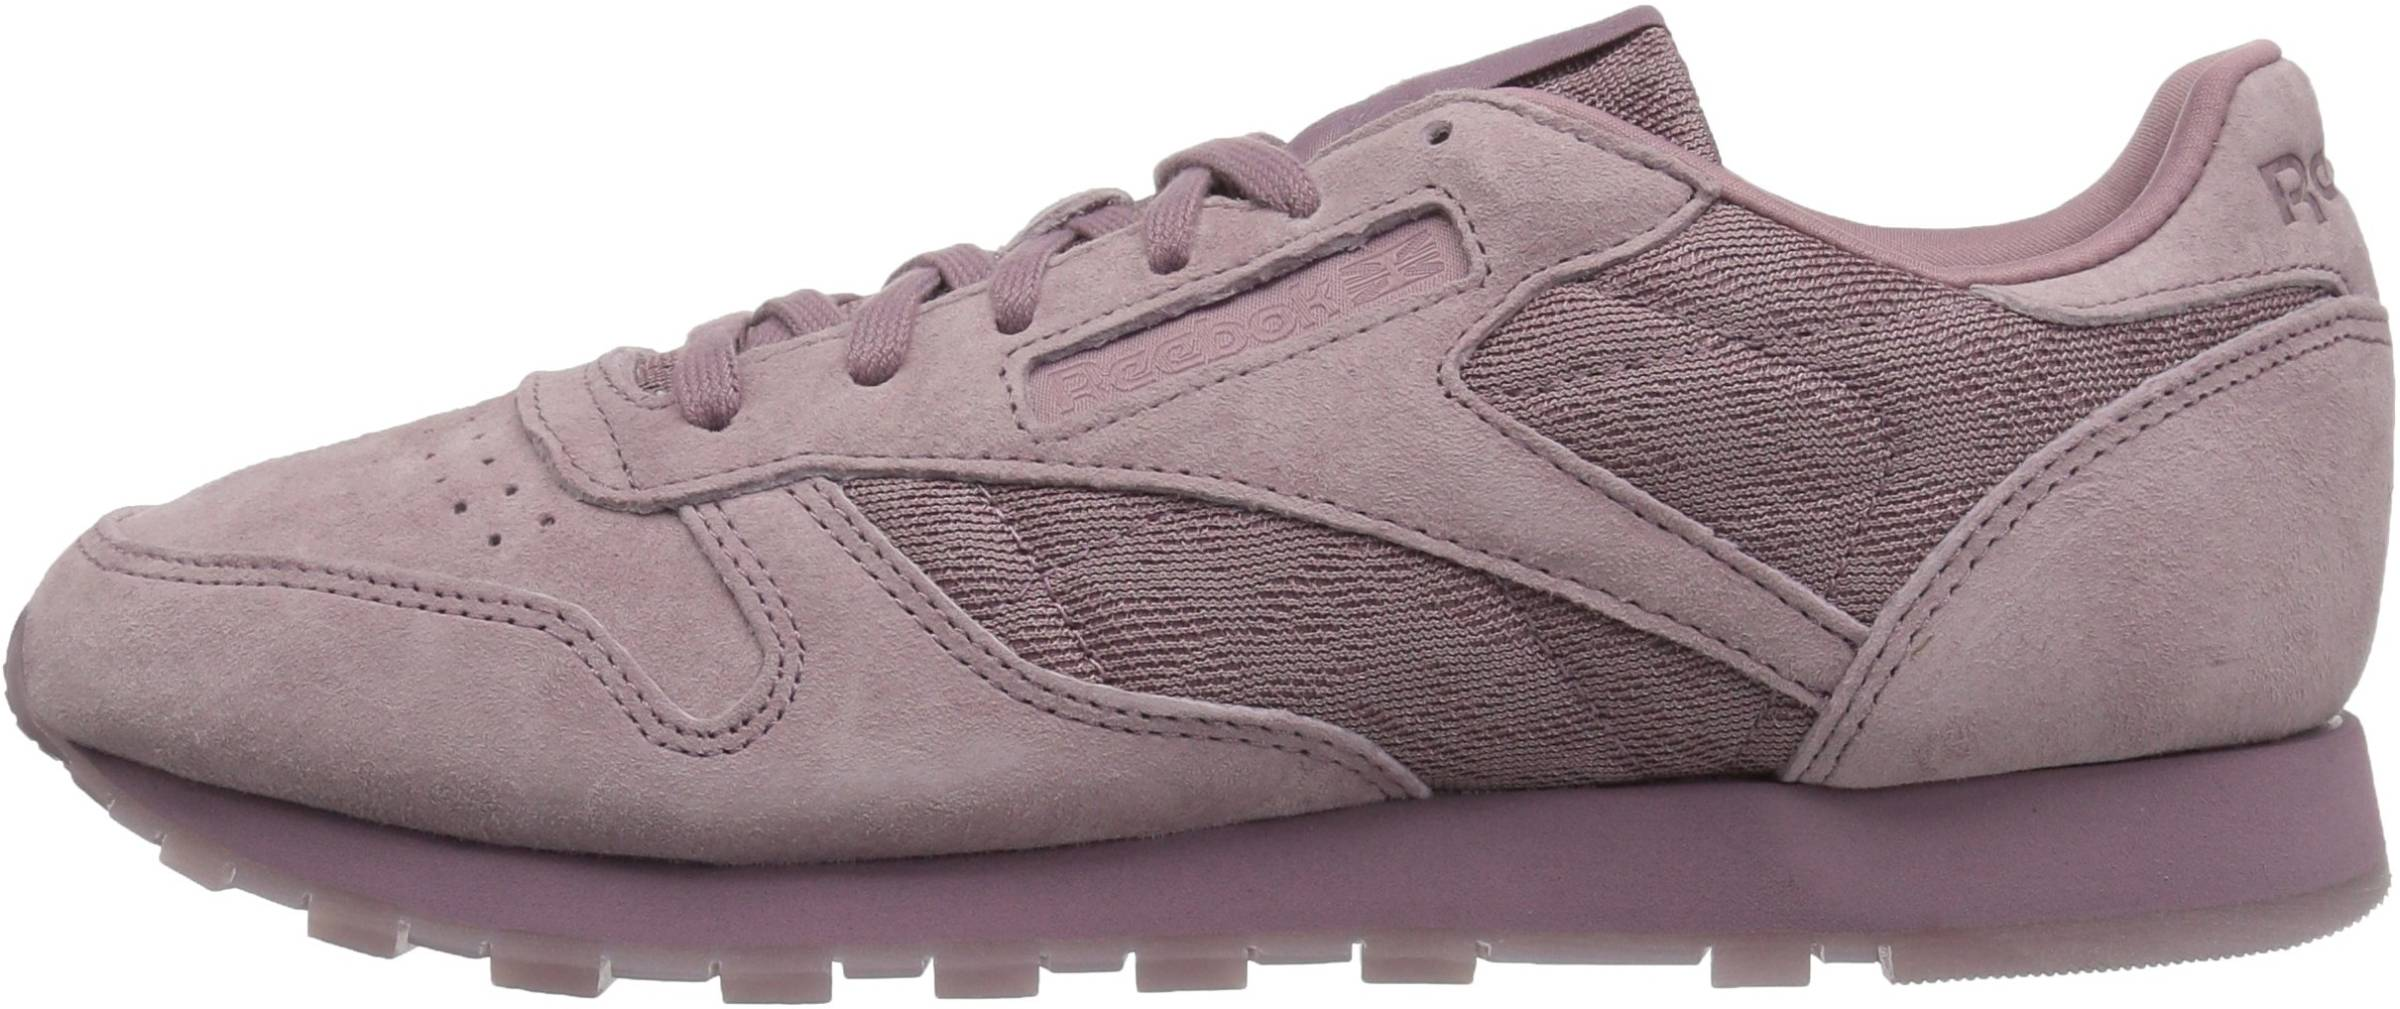 hacer los deberes Cargado Red  10 Reasons to/NOT to Buy Reebok Classic Leather Lace (Jan 2021) | RunRepeat